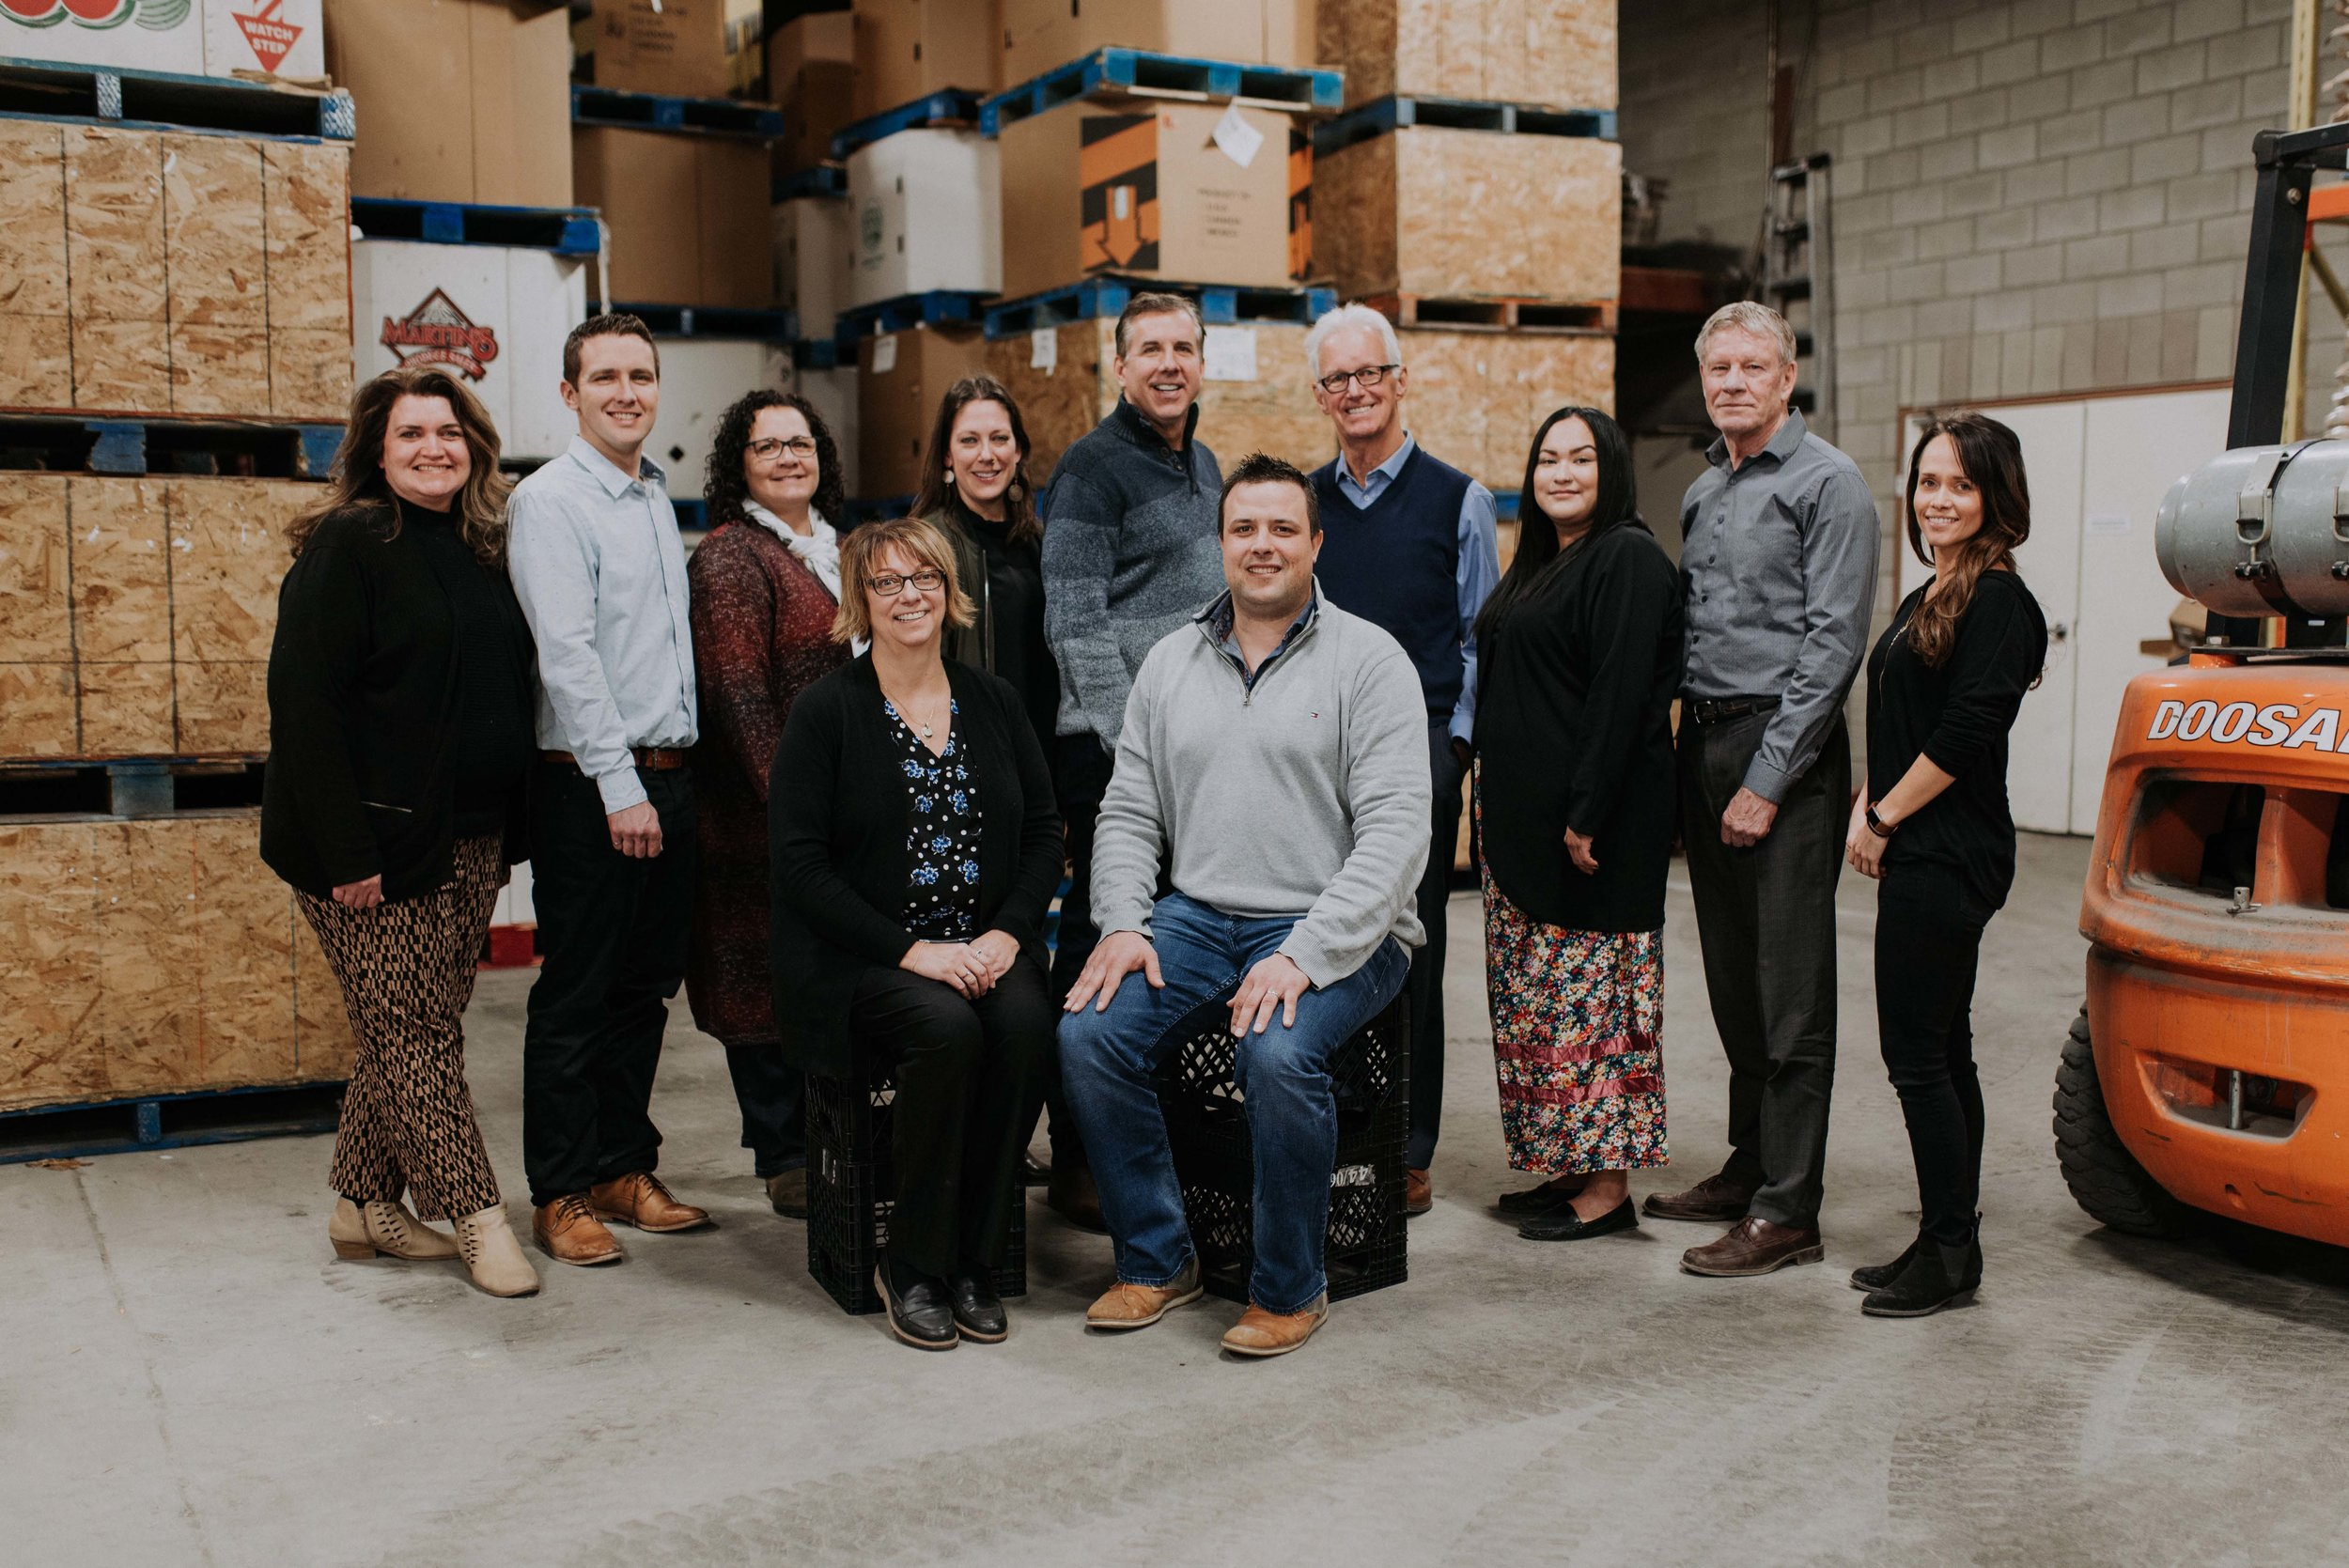 2019 CANADIAN TIRE GOLF CLASSIC COMMITTEE PHOTOGRAPHED AT THE SASKATOON FOODBANK & LEARNING CENTRE